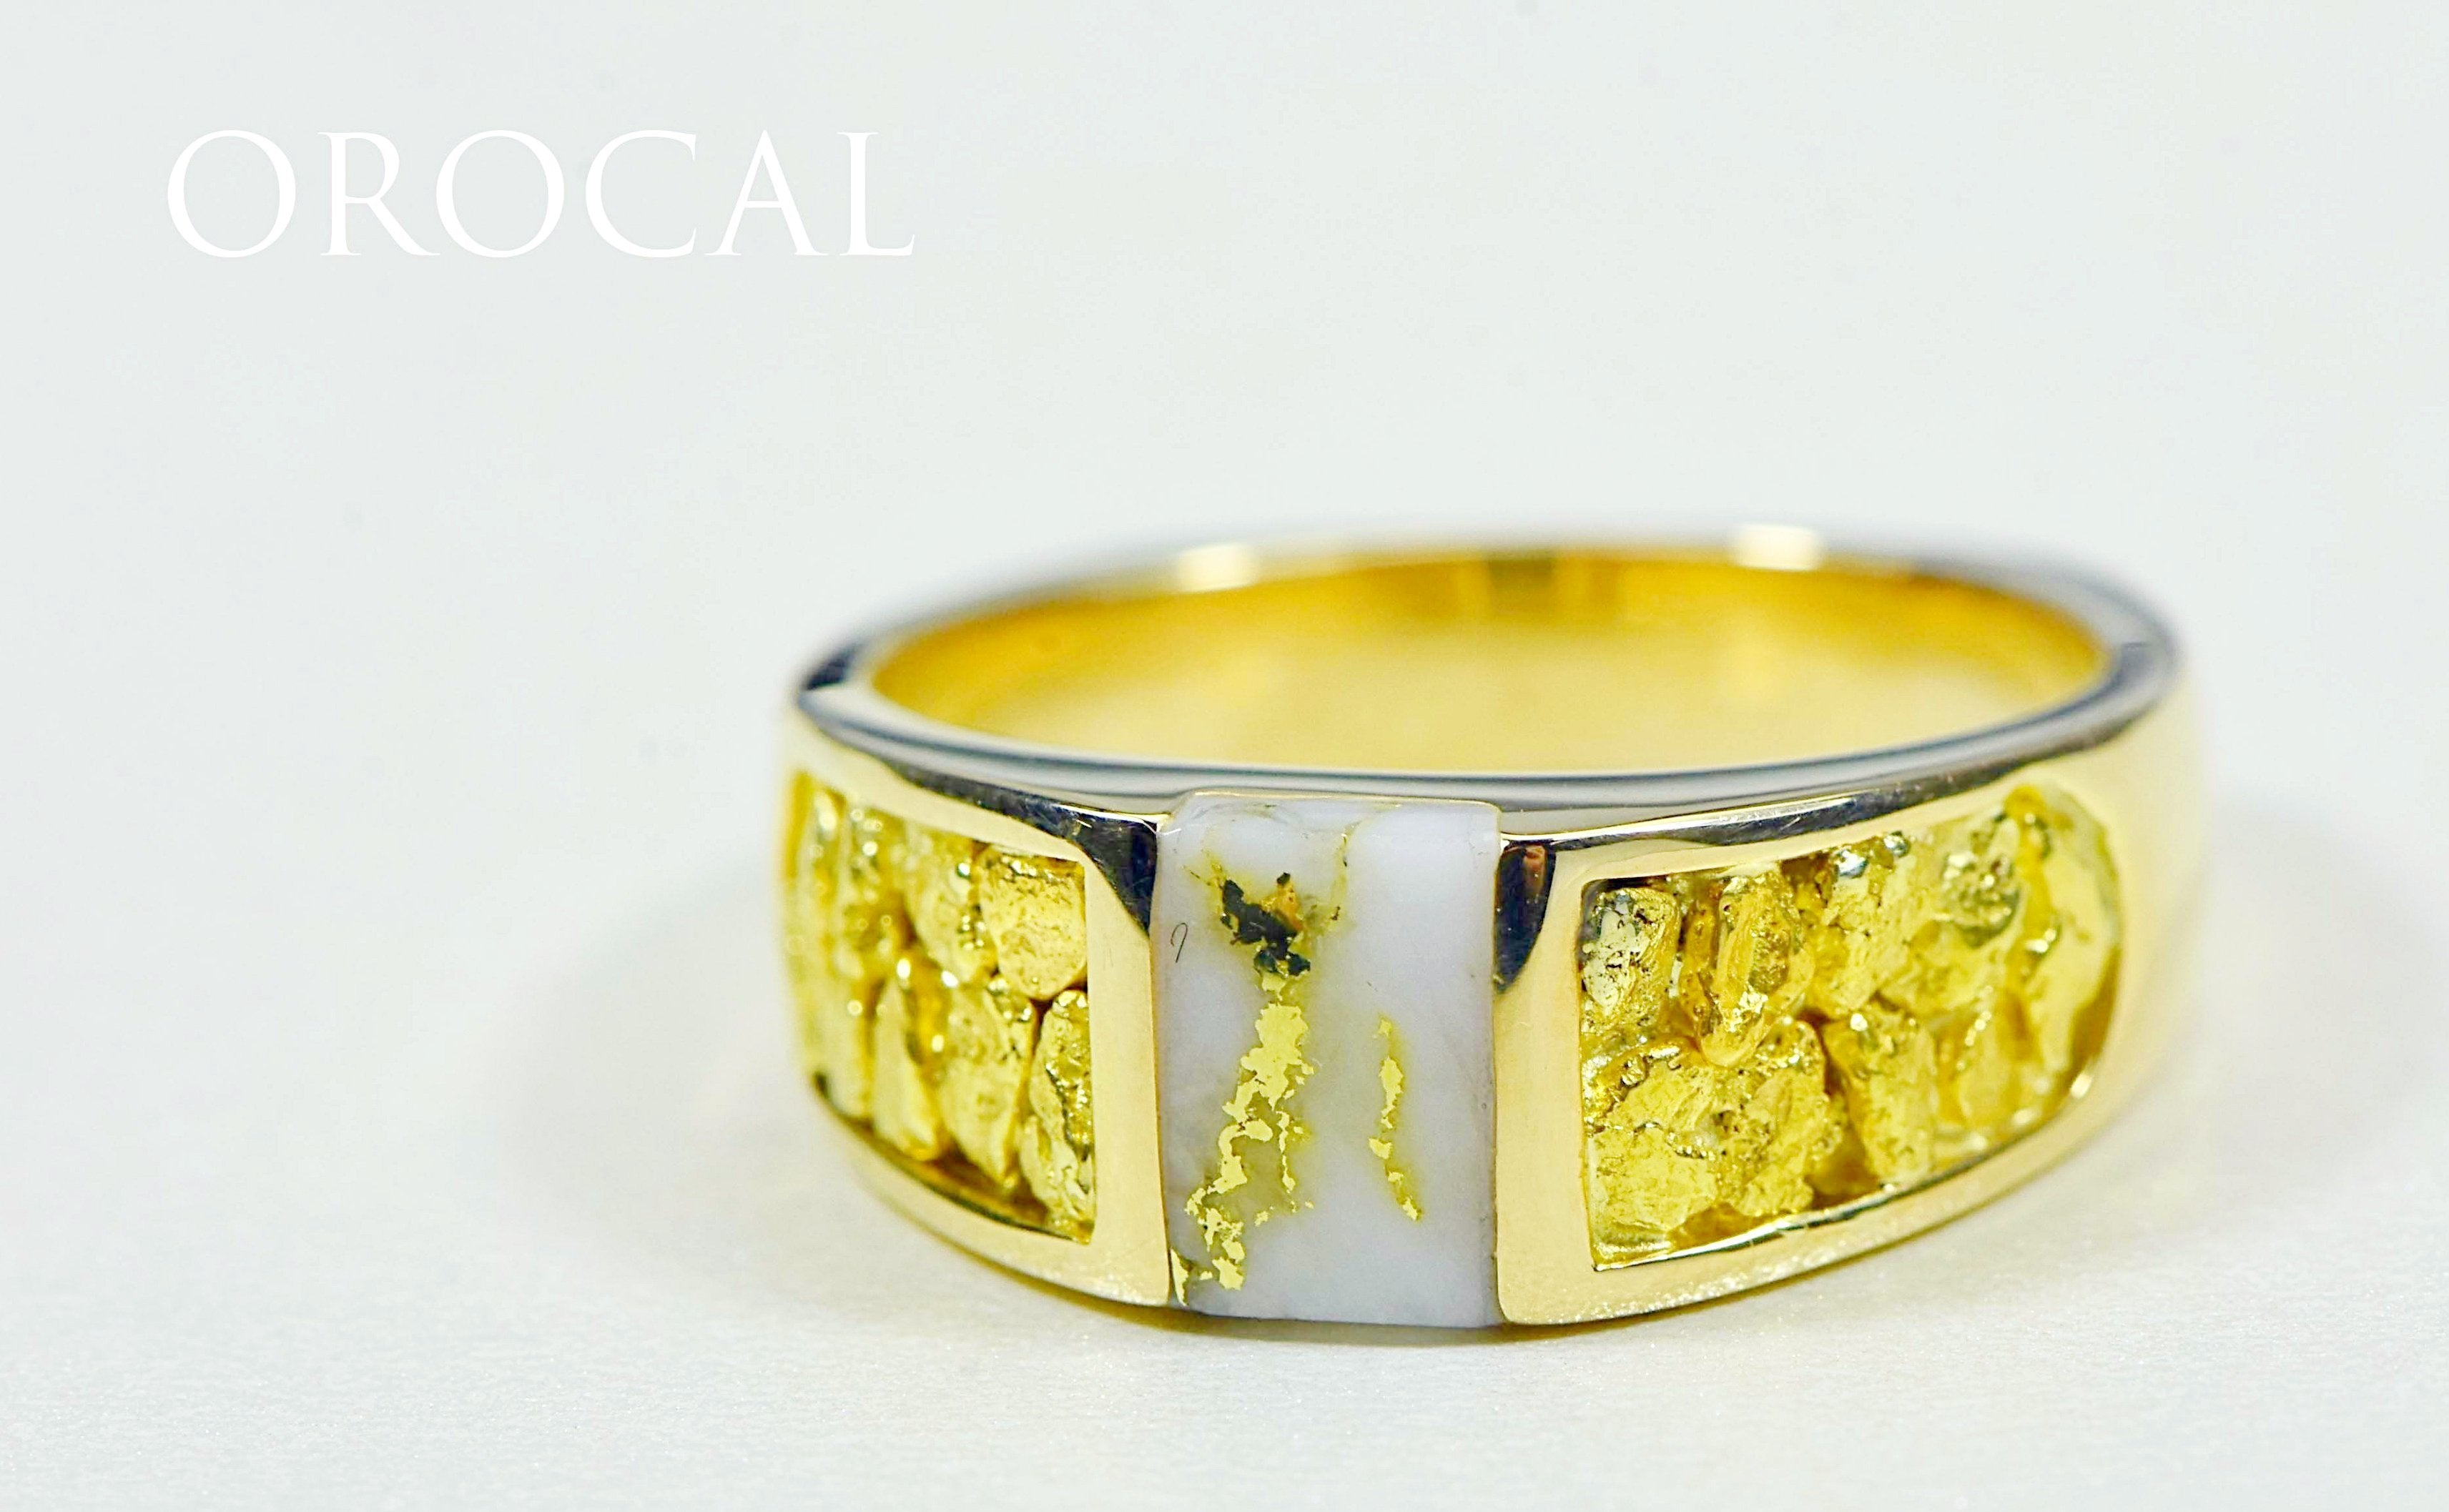 "Gold Quartz Ring ""Orocal"" RLL1359NQ Genuine Hand Crafted Jewelry - 14K Gold Casting"